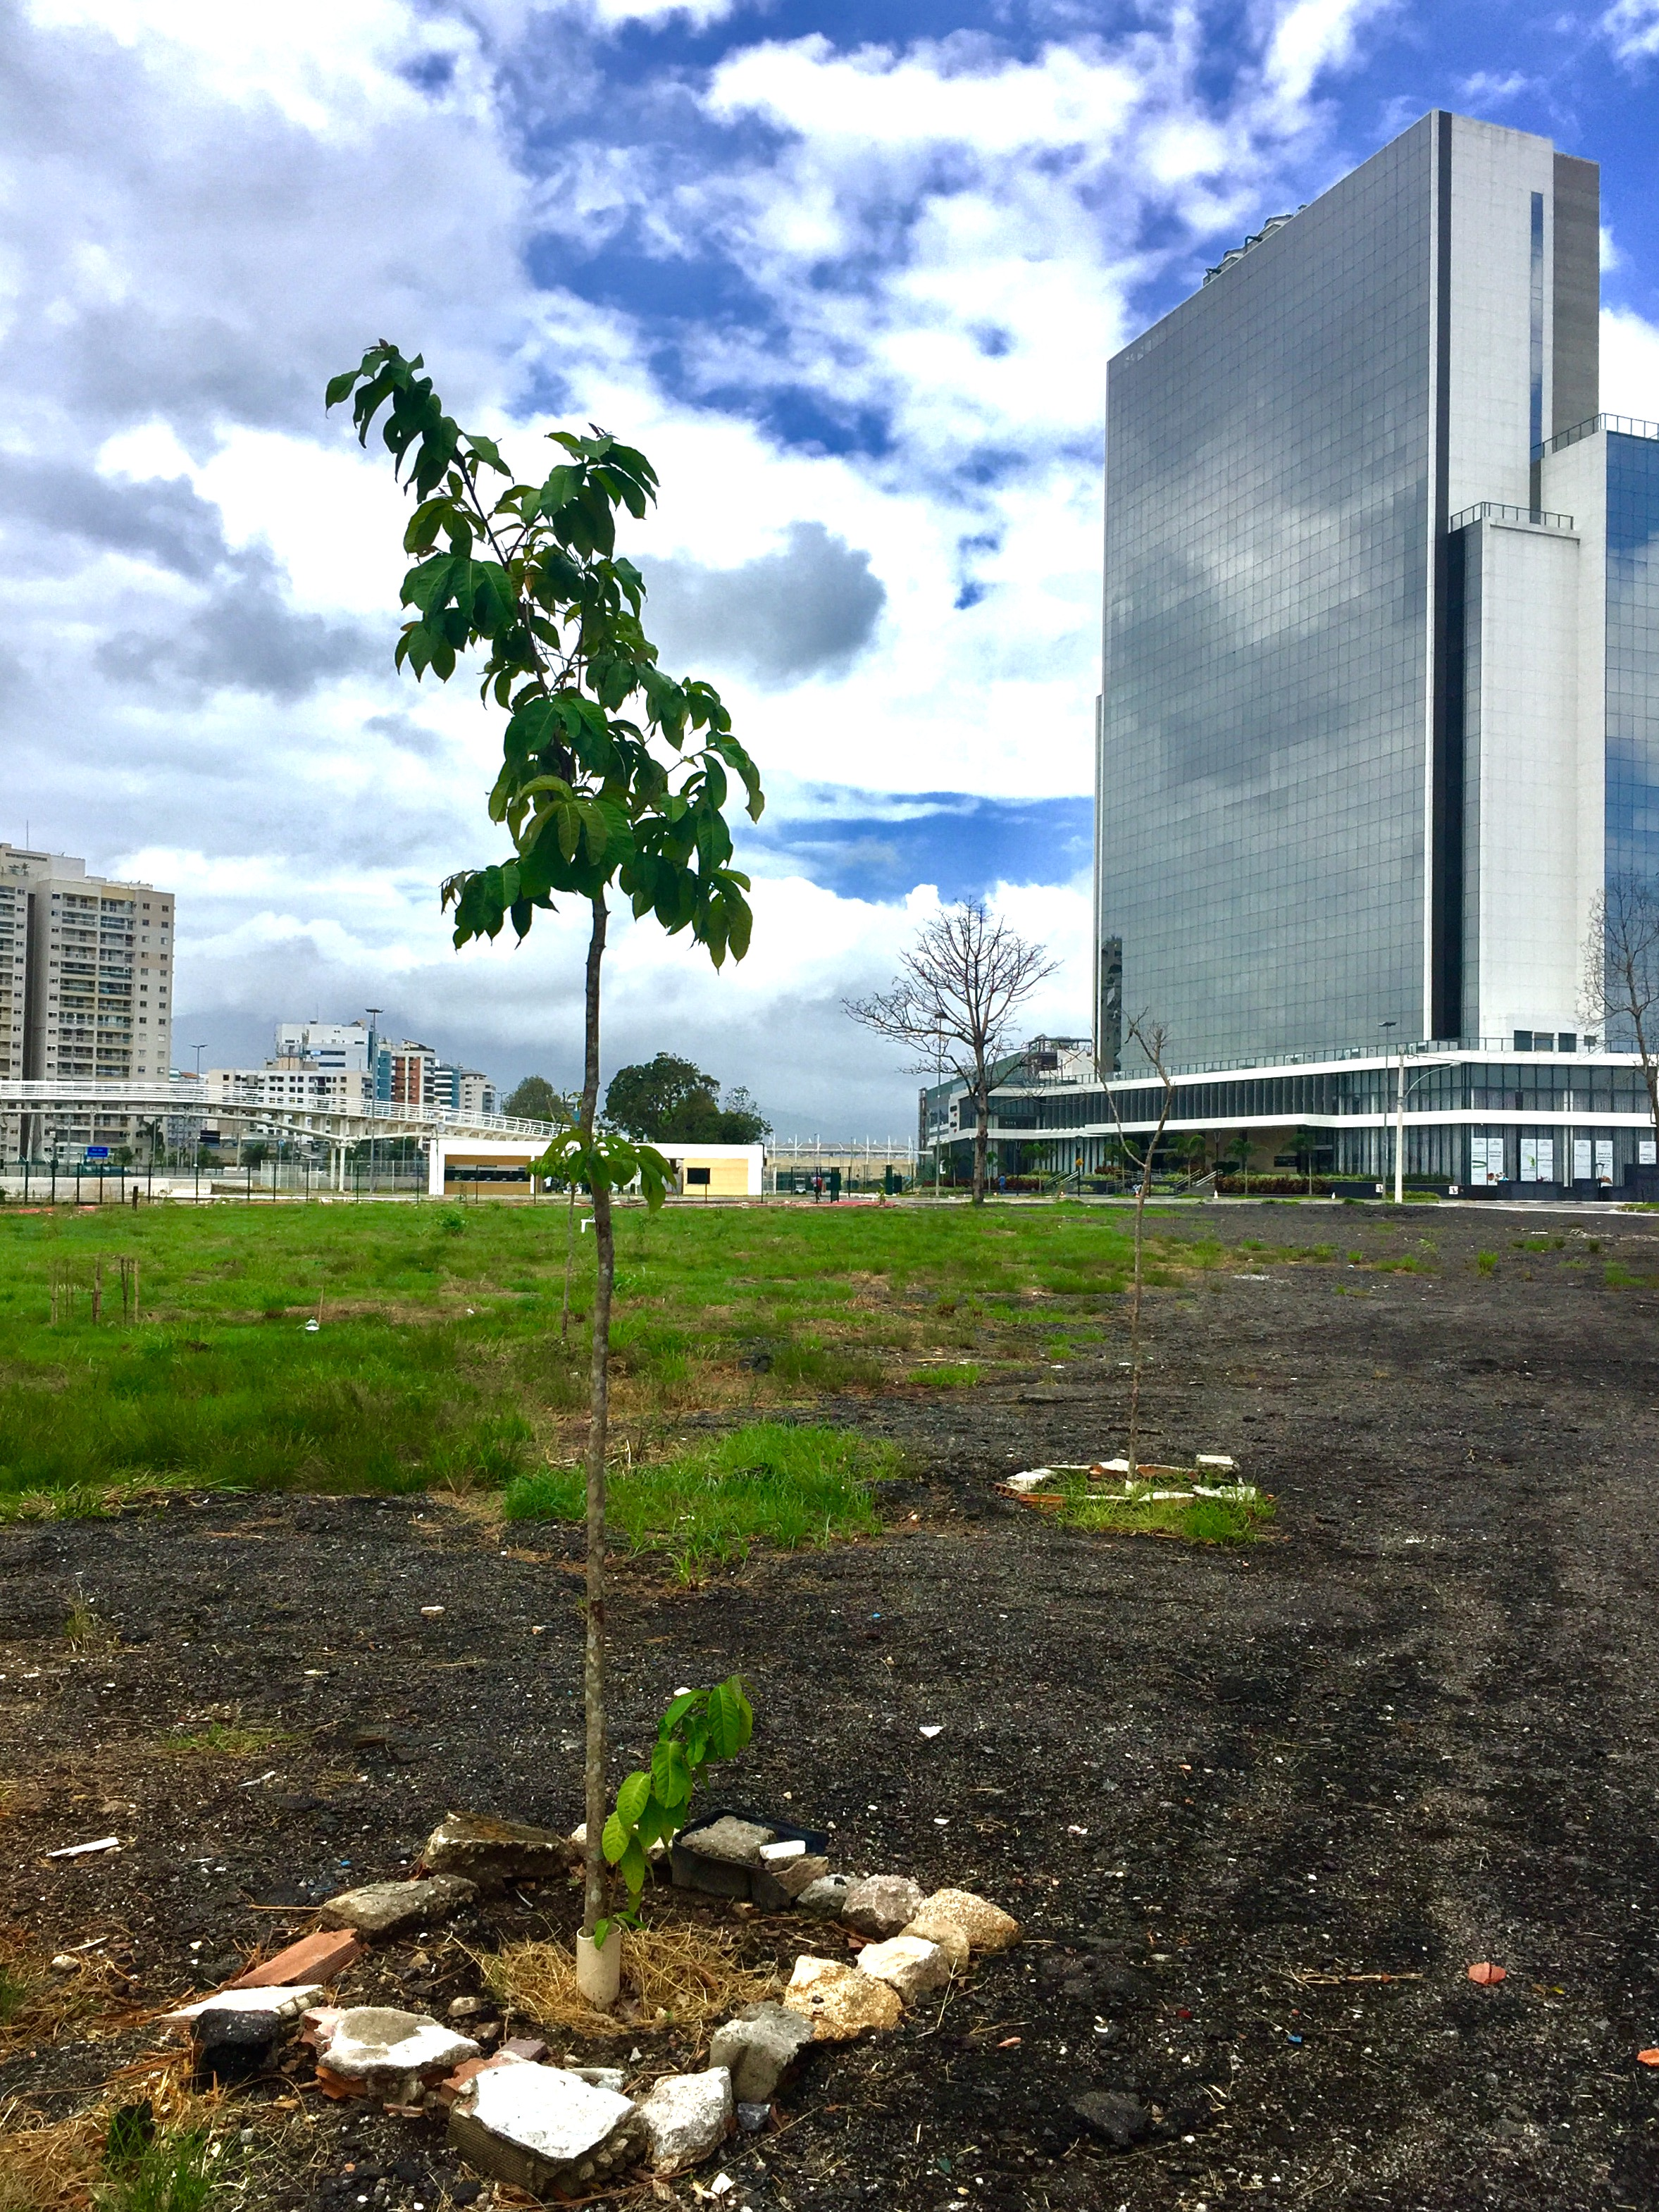 Residents are reforesting the abandoned gravel lots surrounding Vila Autódromo